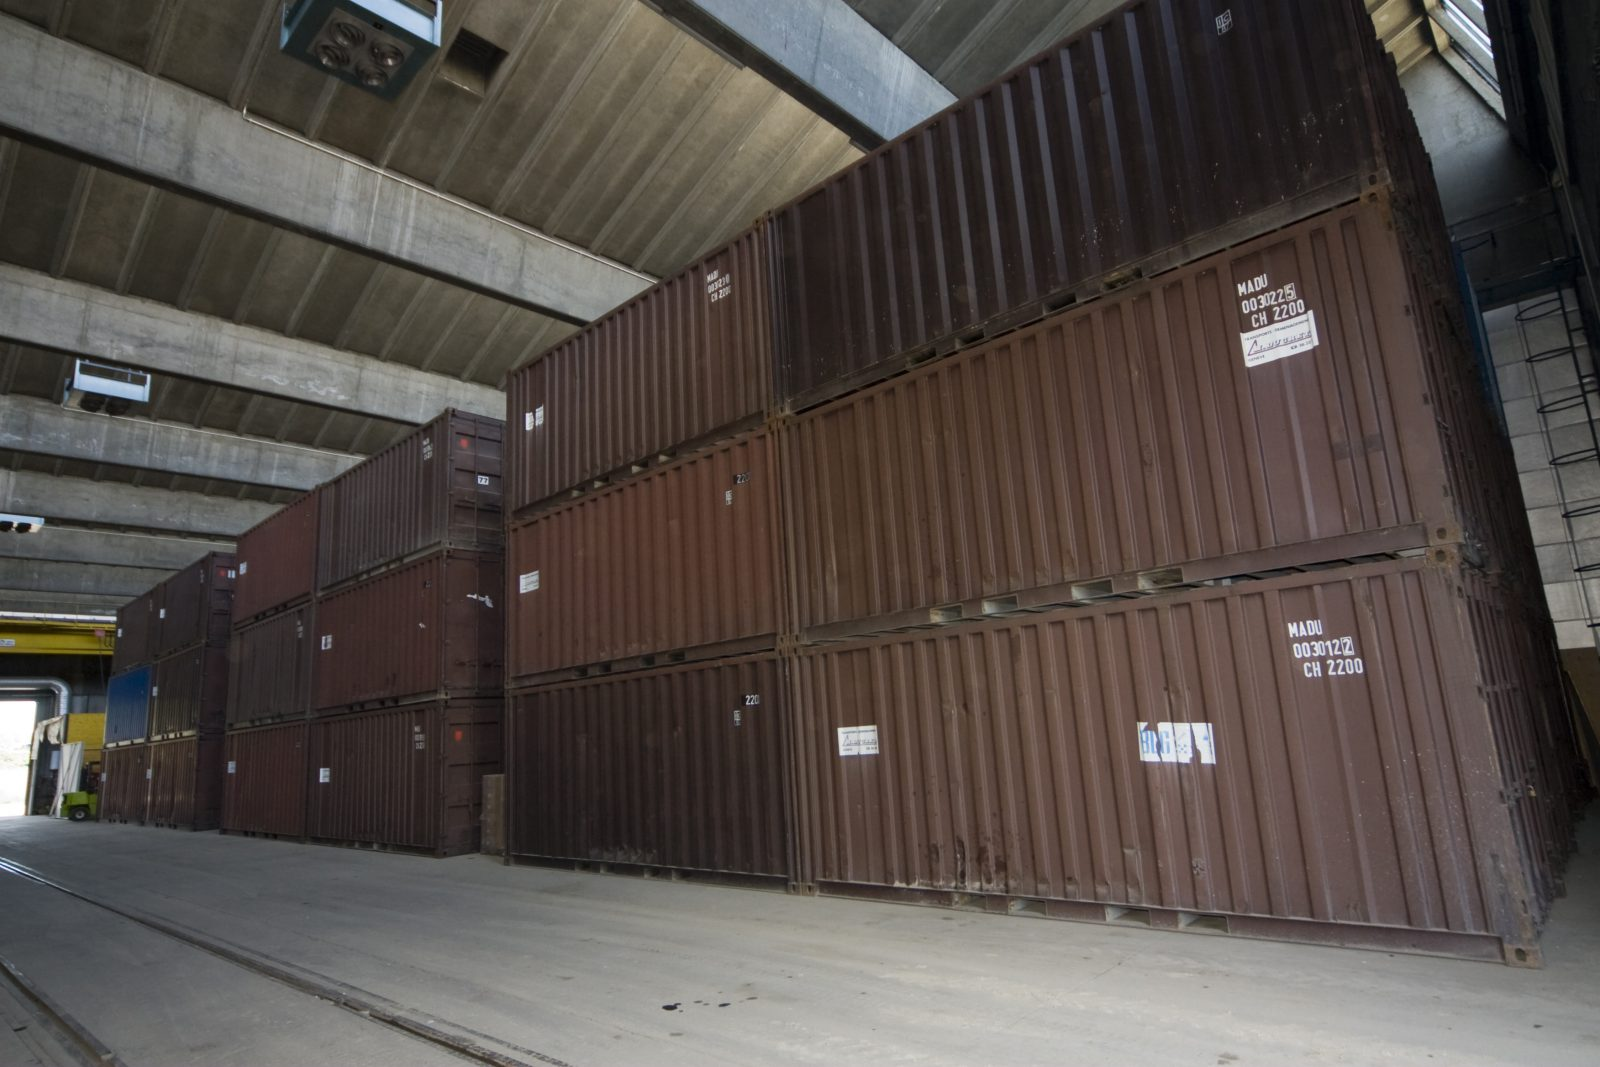 Location Container Garde Meuble Moving Firm With Furniture Storage Services In Geneva Switzerland